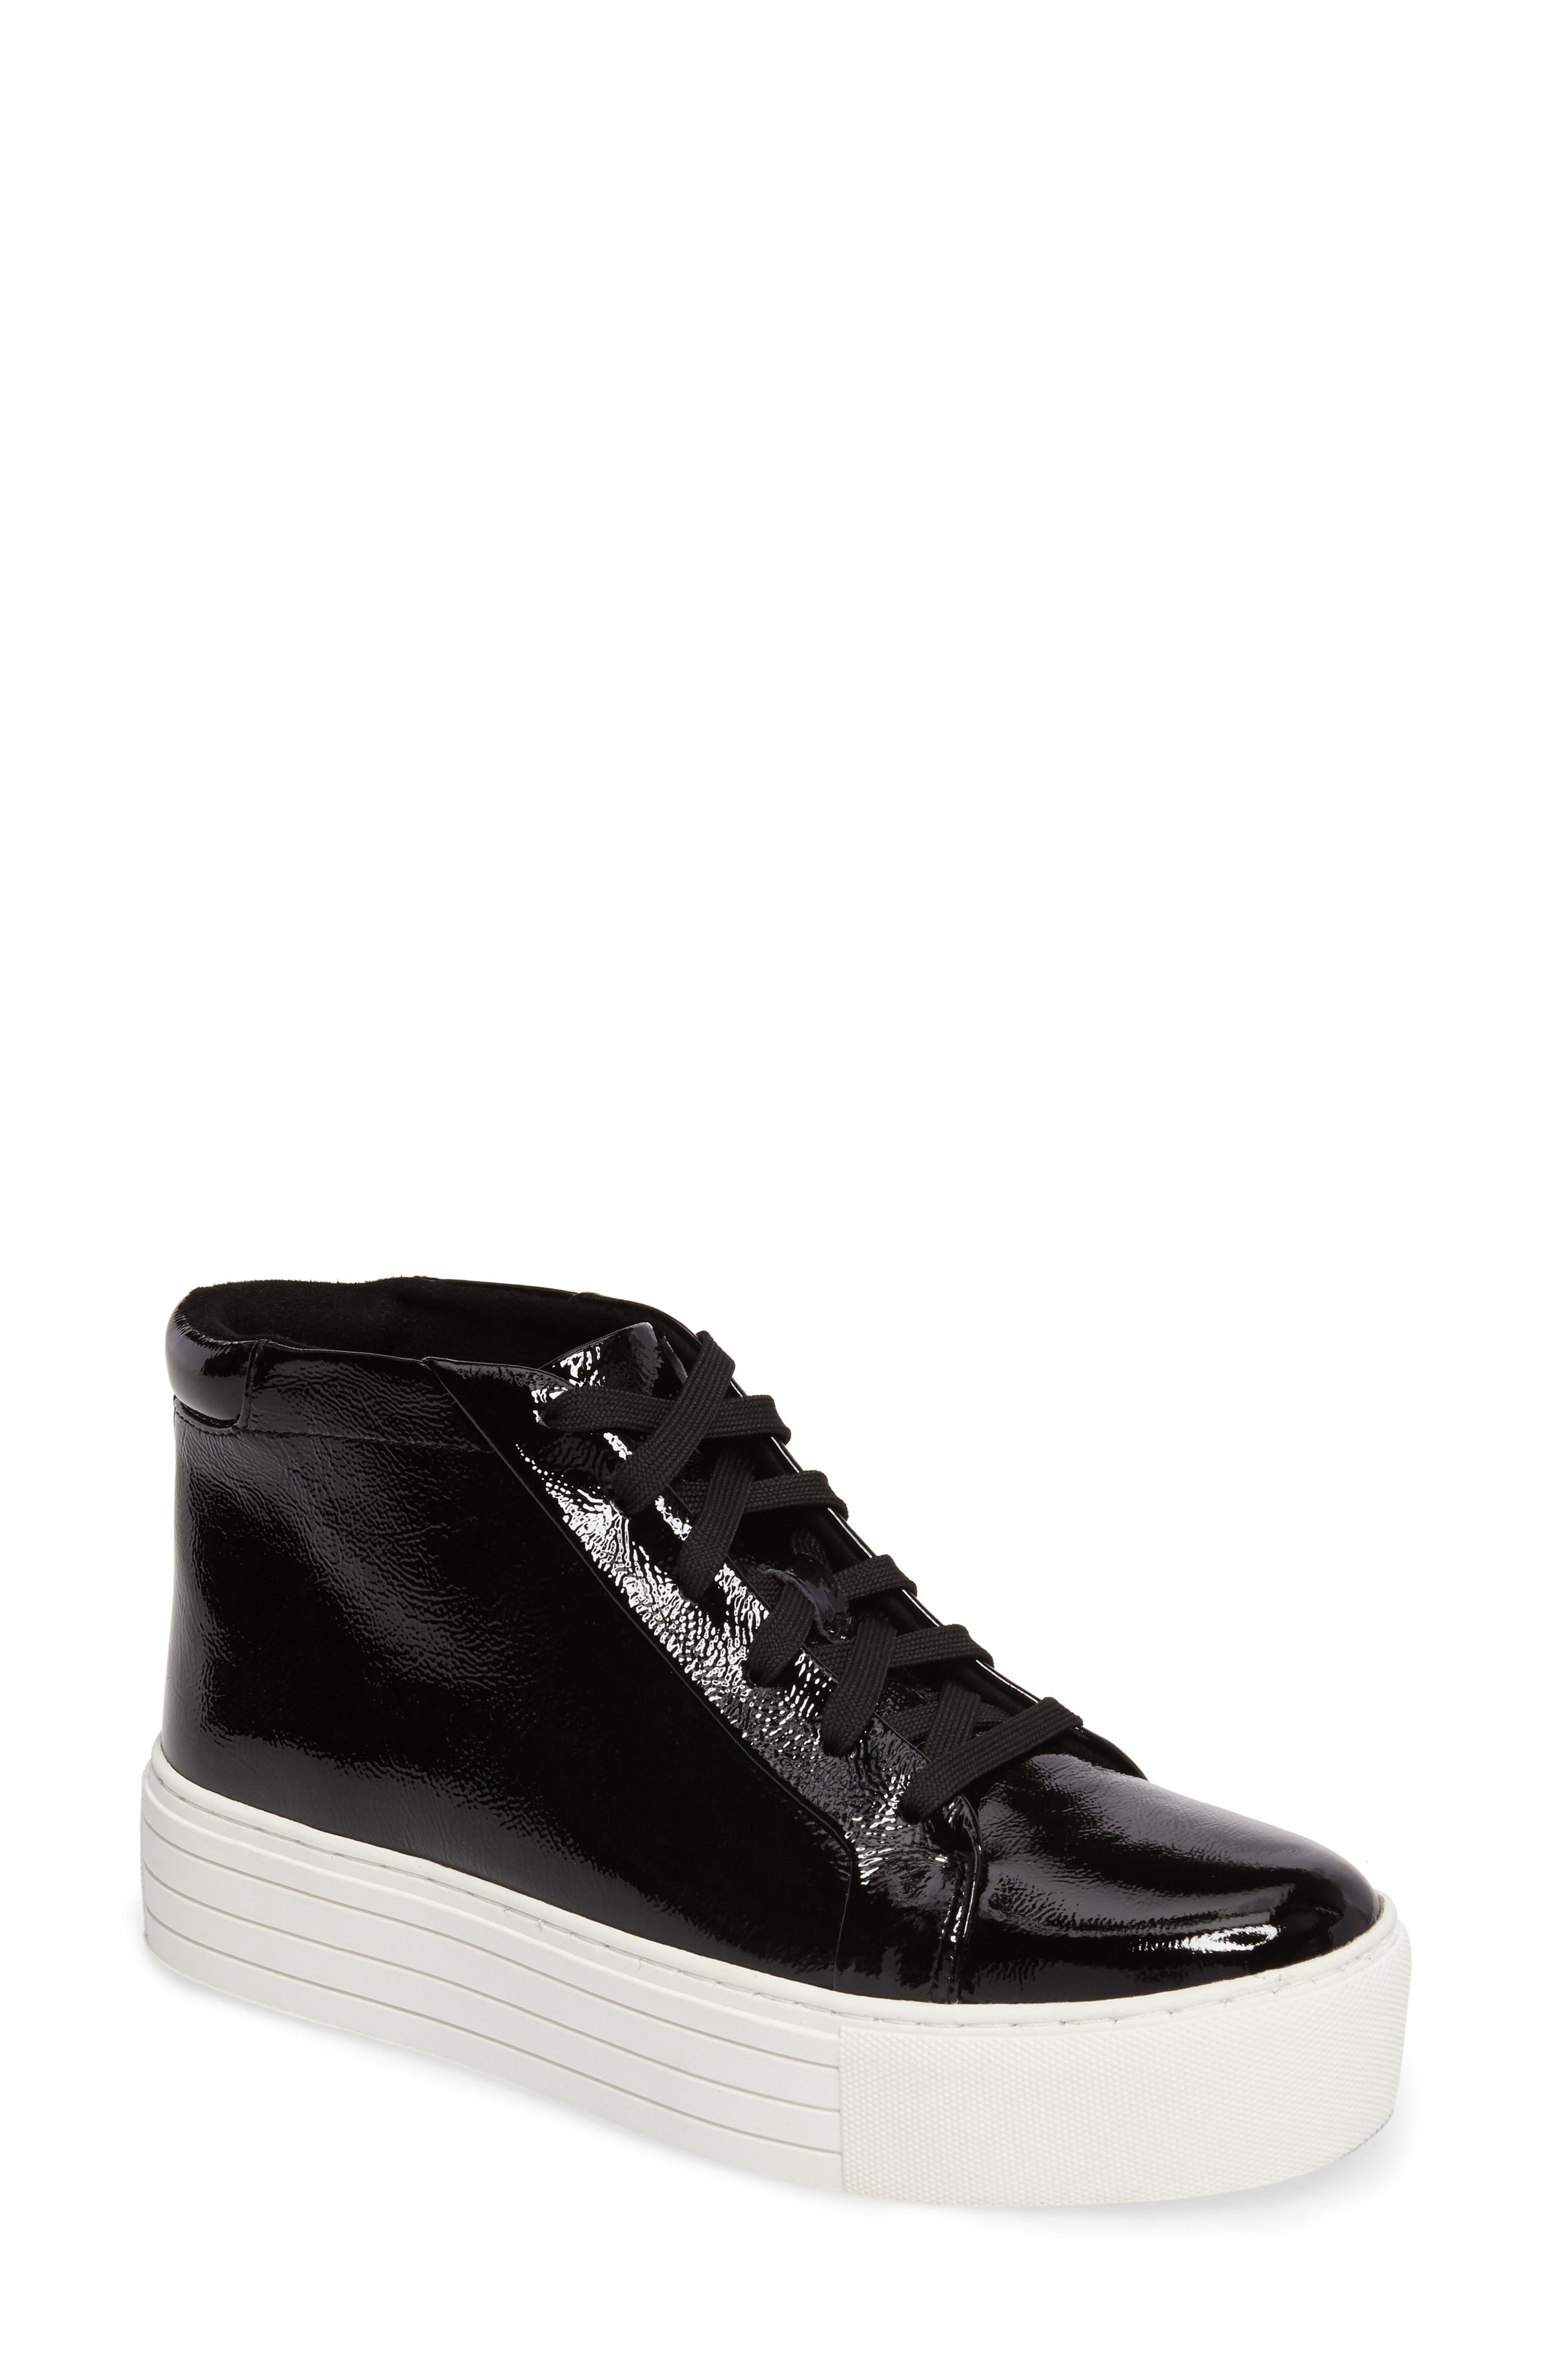 Janette High Top Platform Sneaker,                             Main thumbnail 1, color,                             Black Patent Leather